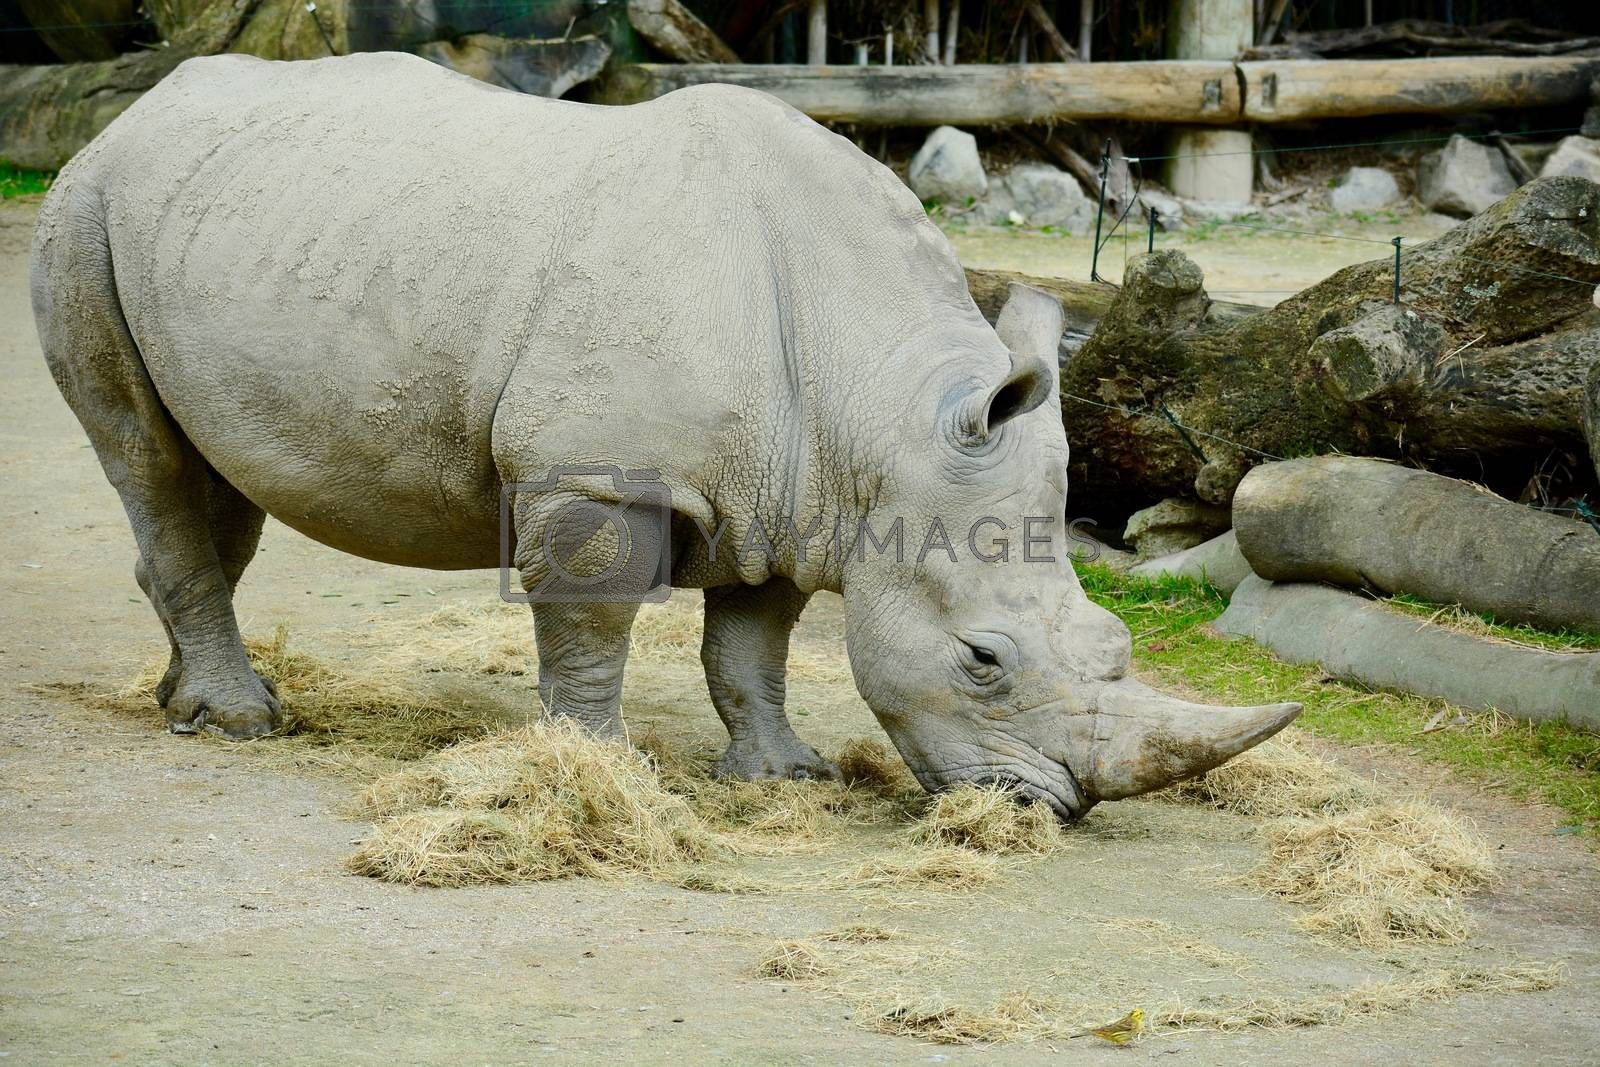 White rhinoceroses are found in grassland and savannah habitat. Herbivore grazers that eat grass, preferring the shortest grains, the white rhinoceros is one of the largest pure grazers.